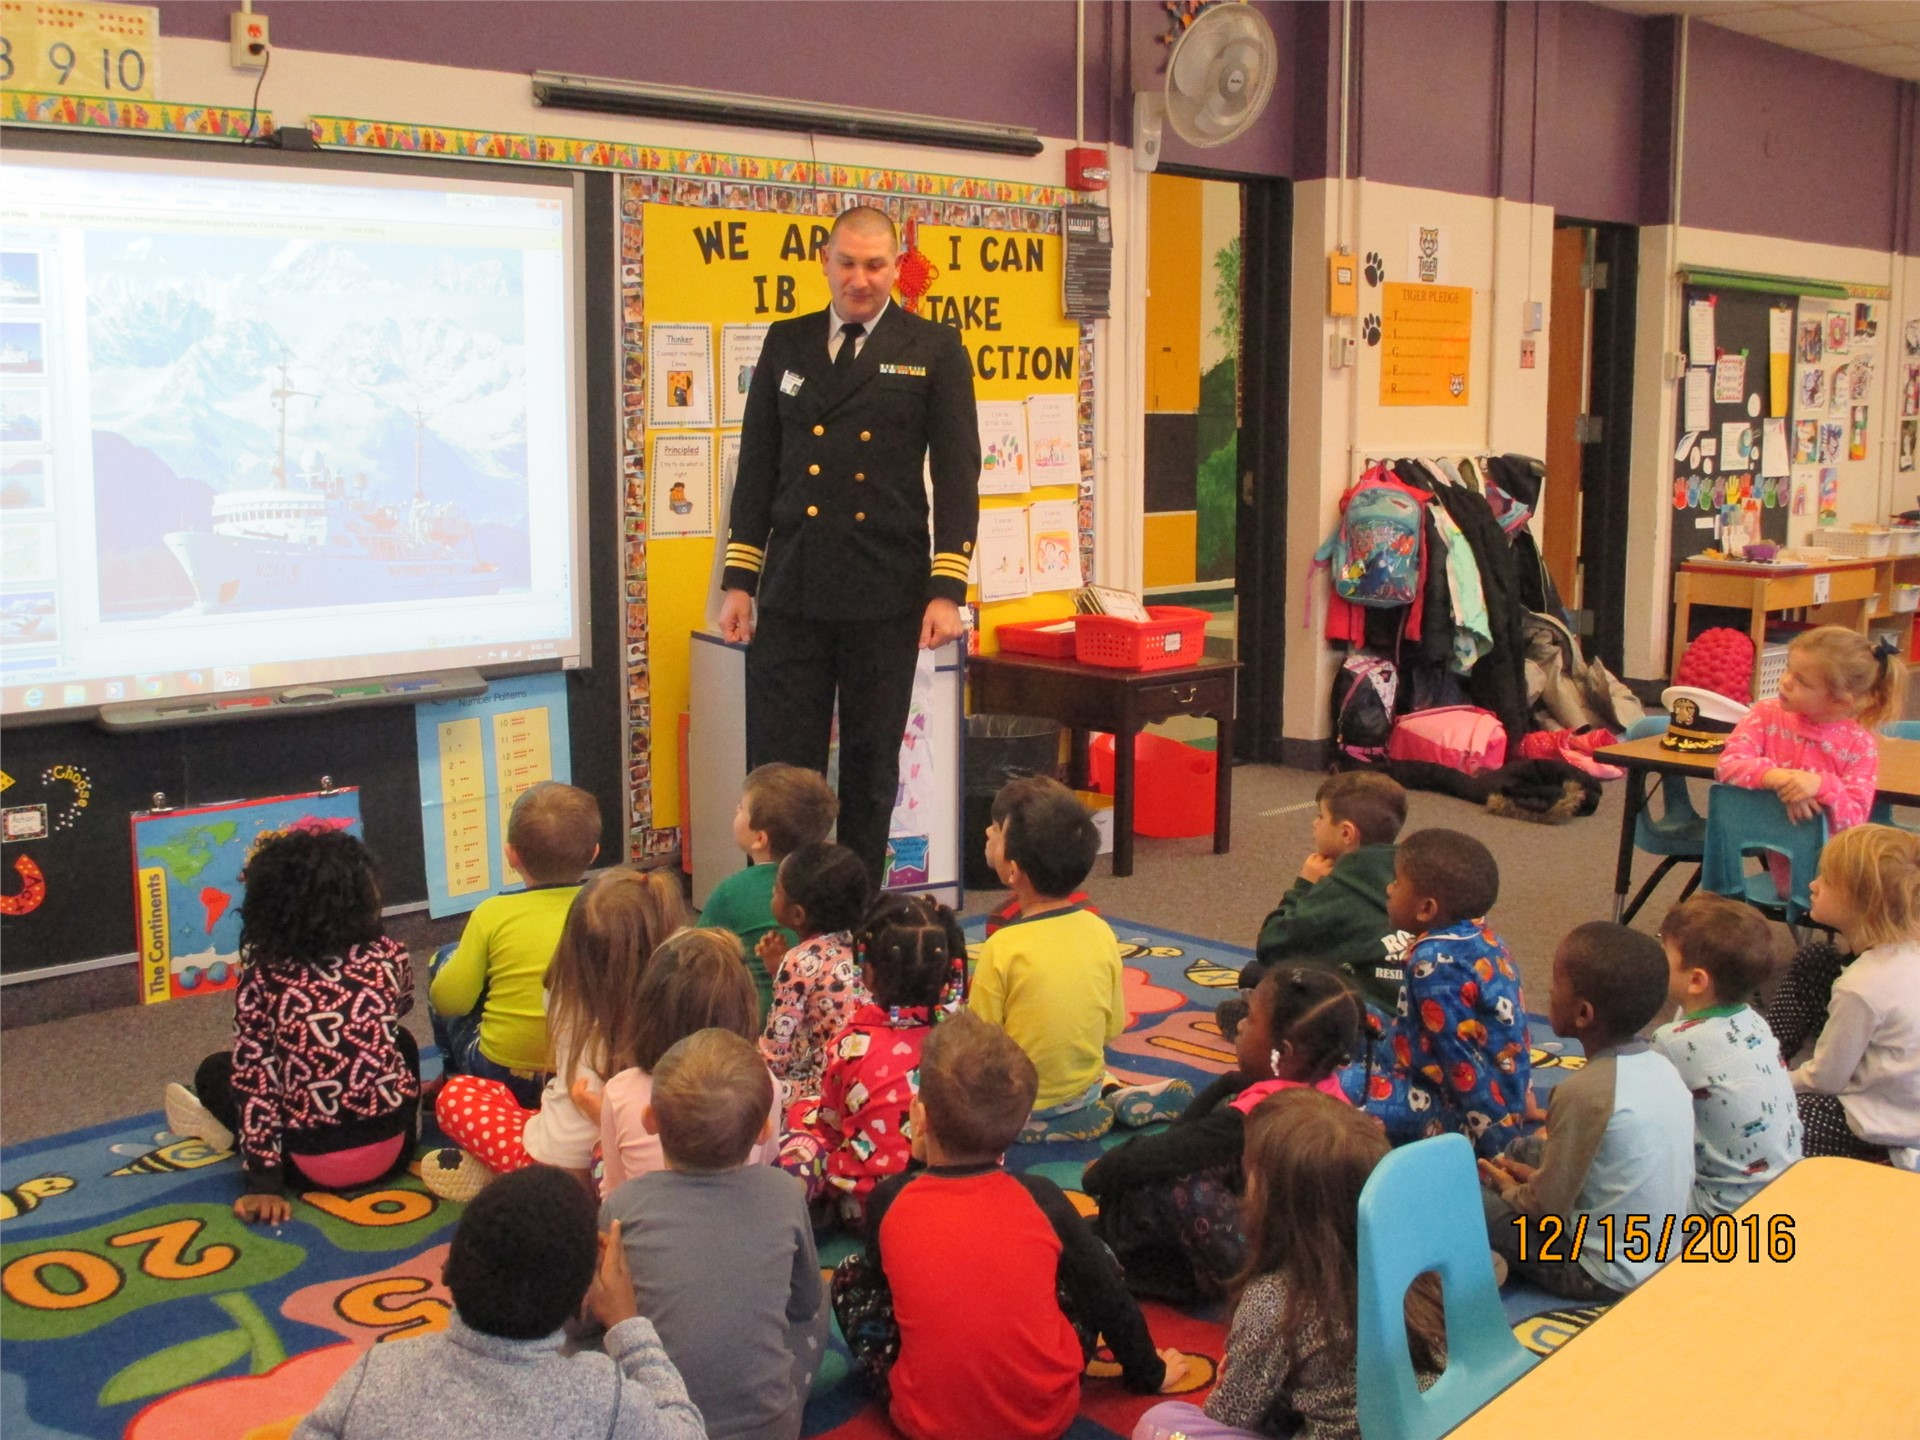 On leave from a government research ship, Commander Jay Lomnicky visits kindergarten daughter's